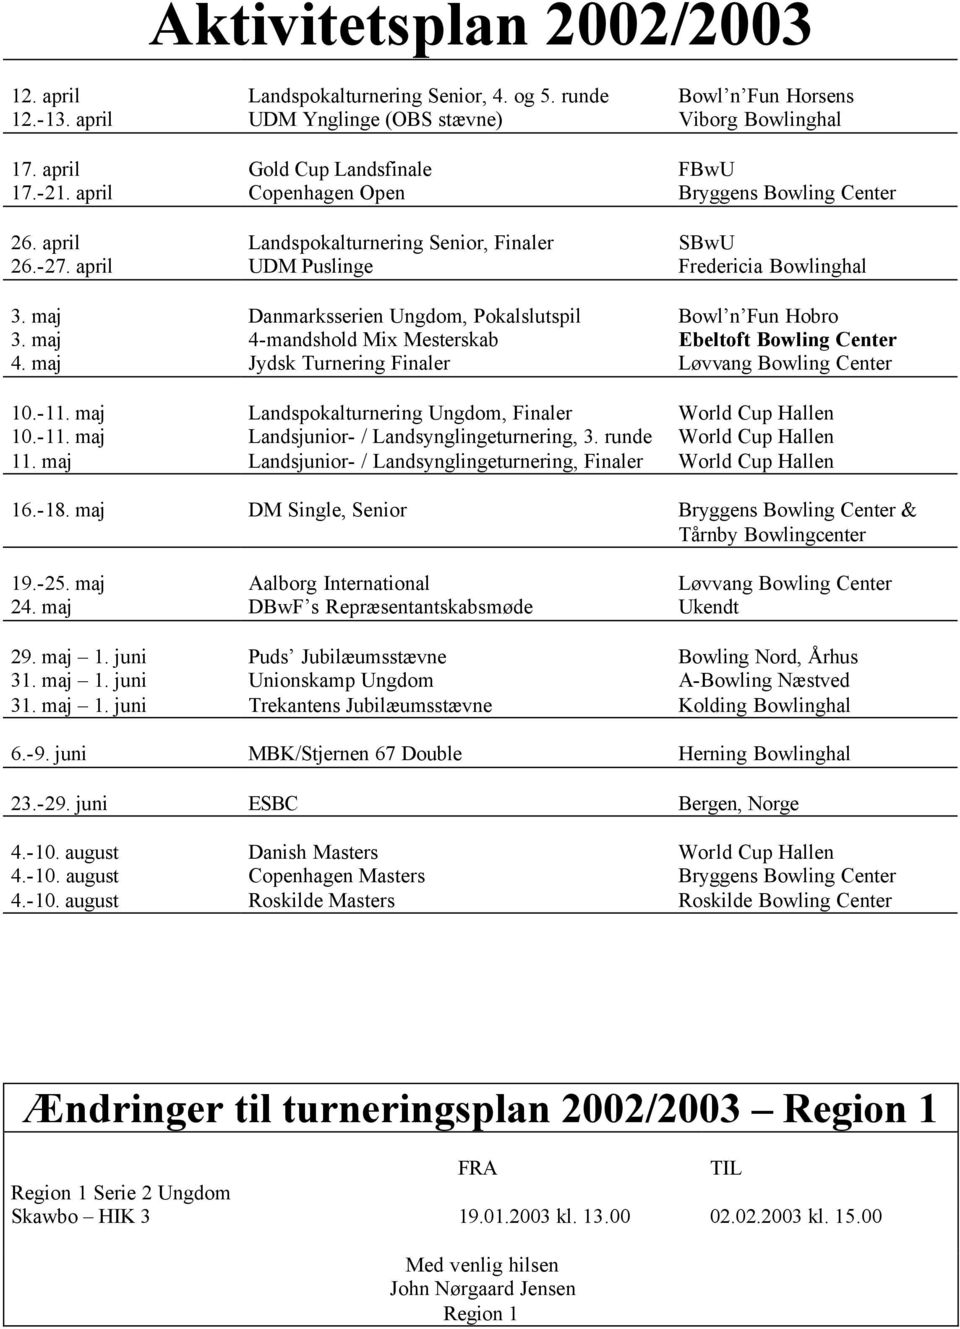 maj Danmarksserien Ungdom, Pokalslutspil Bowl n Fun Hobro 3. maj 4-mandshold Mix Mesterskab Ebeltoft Bowling Center 4. maj Jydsk Turnering Finaler Løvvang Bowling Center 10.-11.